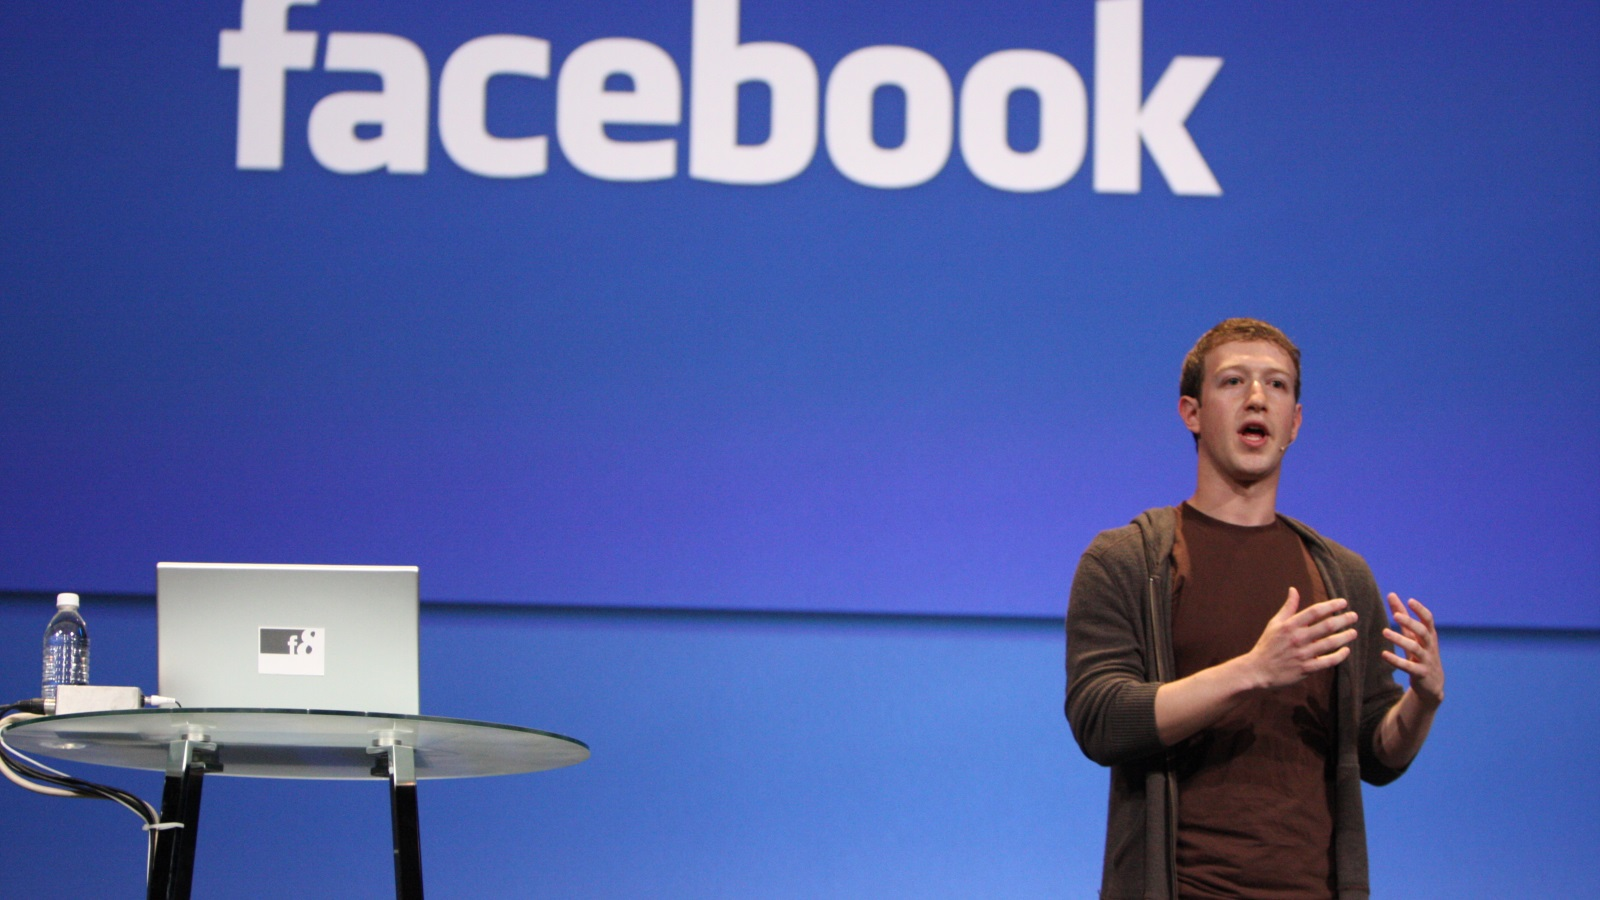 Mark Zuckerberg, Face Book CEO